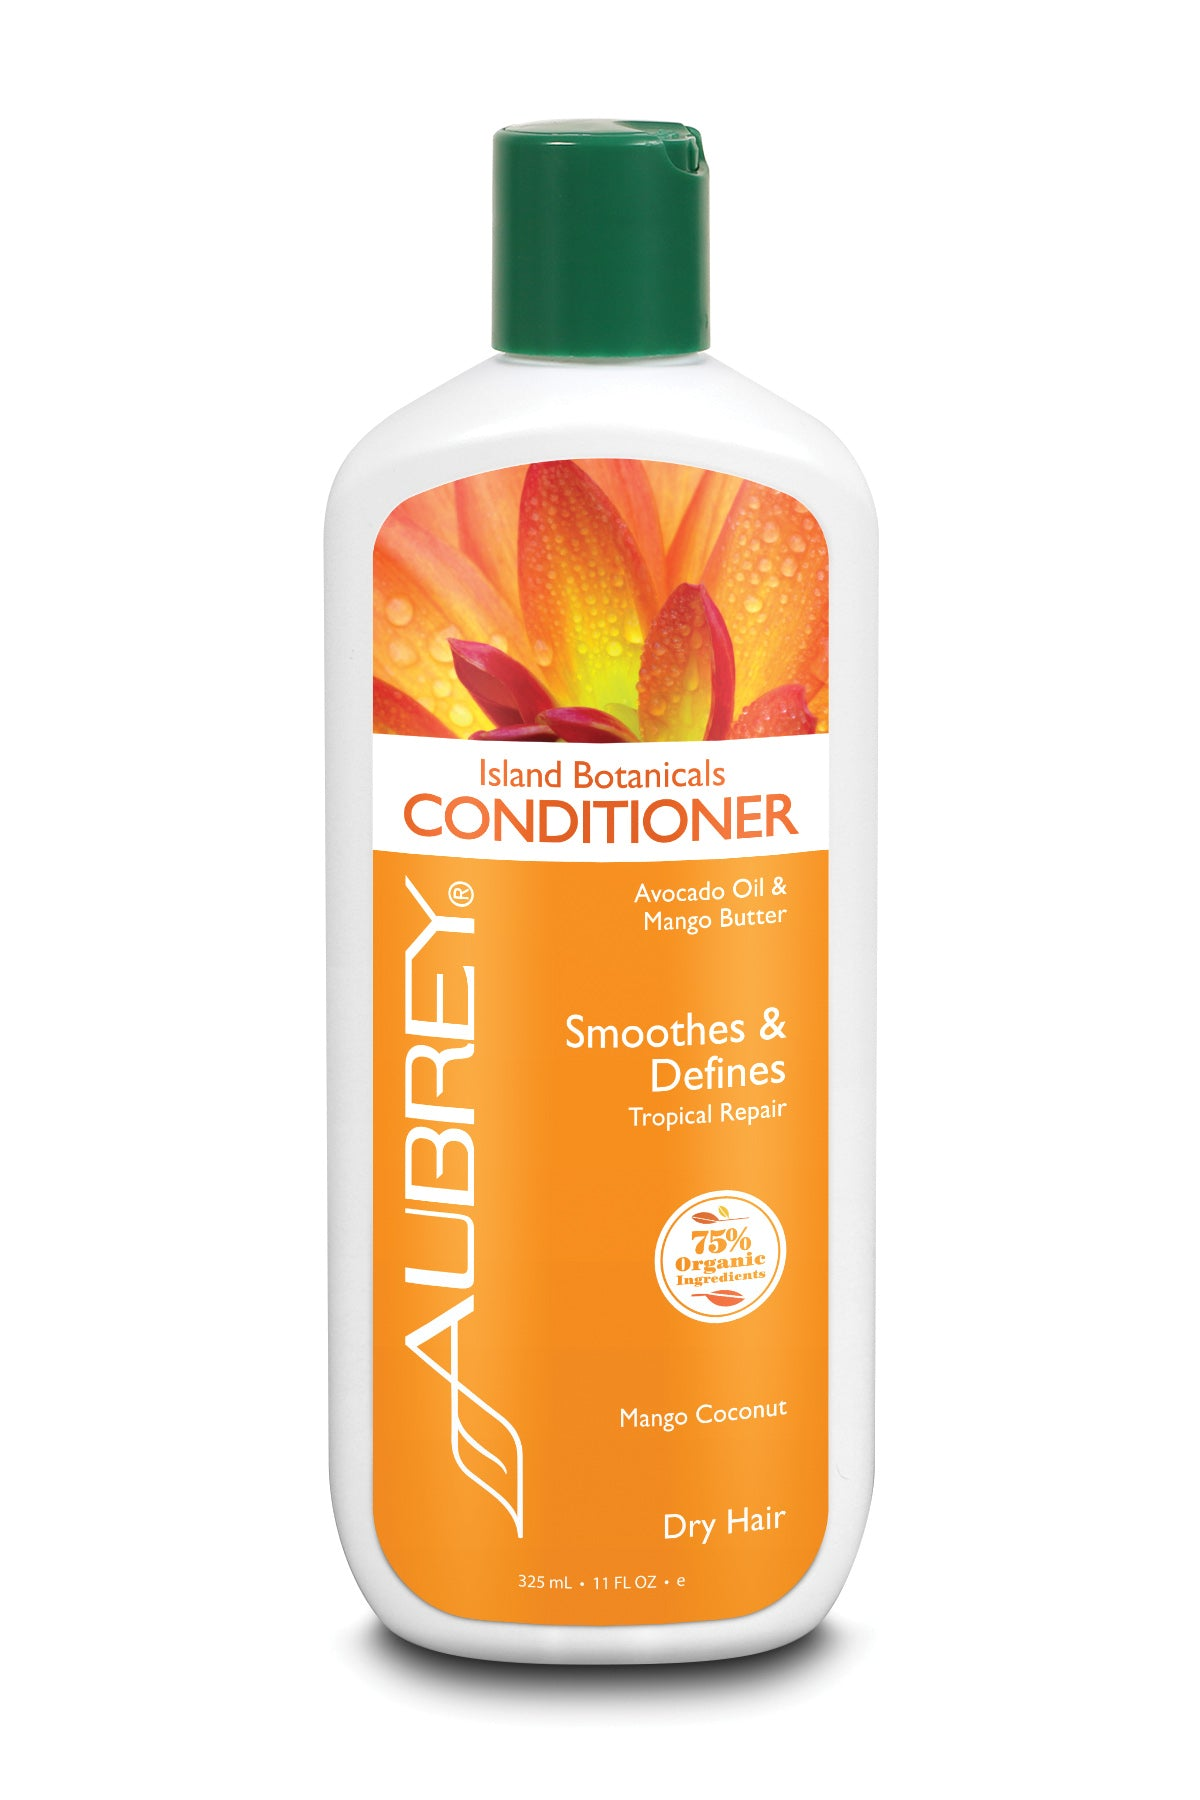 Island Botanicals Conditioner Mango Coconut - 11oz